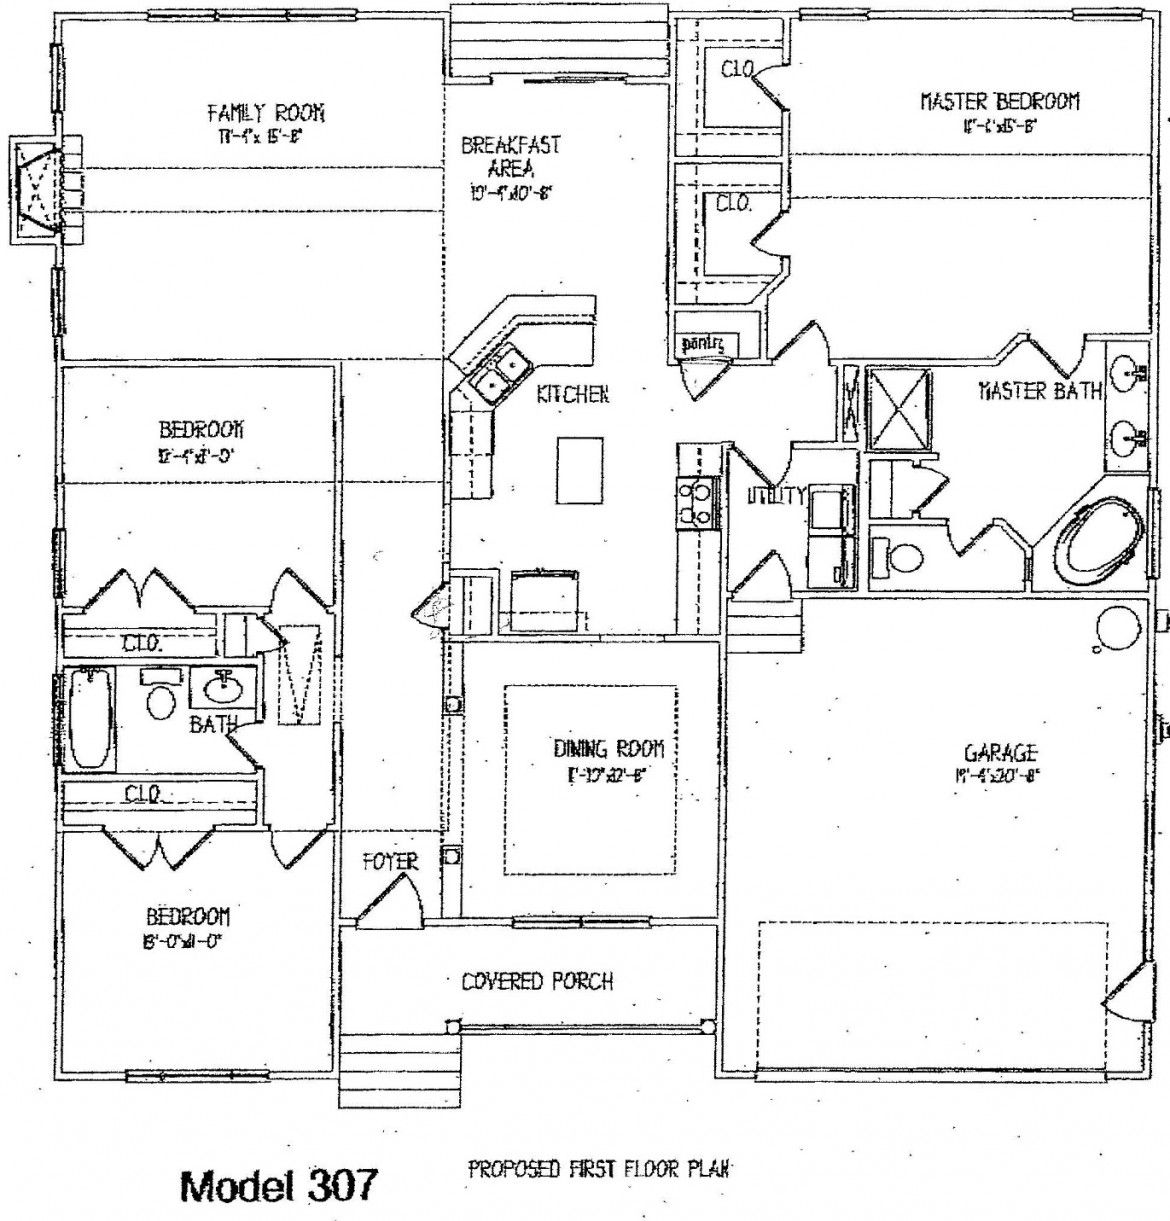 Drawing Floor Plans Online Awesome Scale House Plan Https Www Youtube Com Channel Ucxpj8hxf Jcir49vda Floor Plans Online House Plans Online House Floor Plans